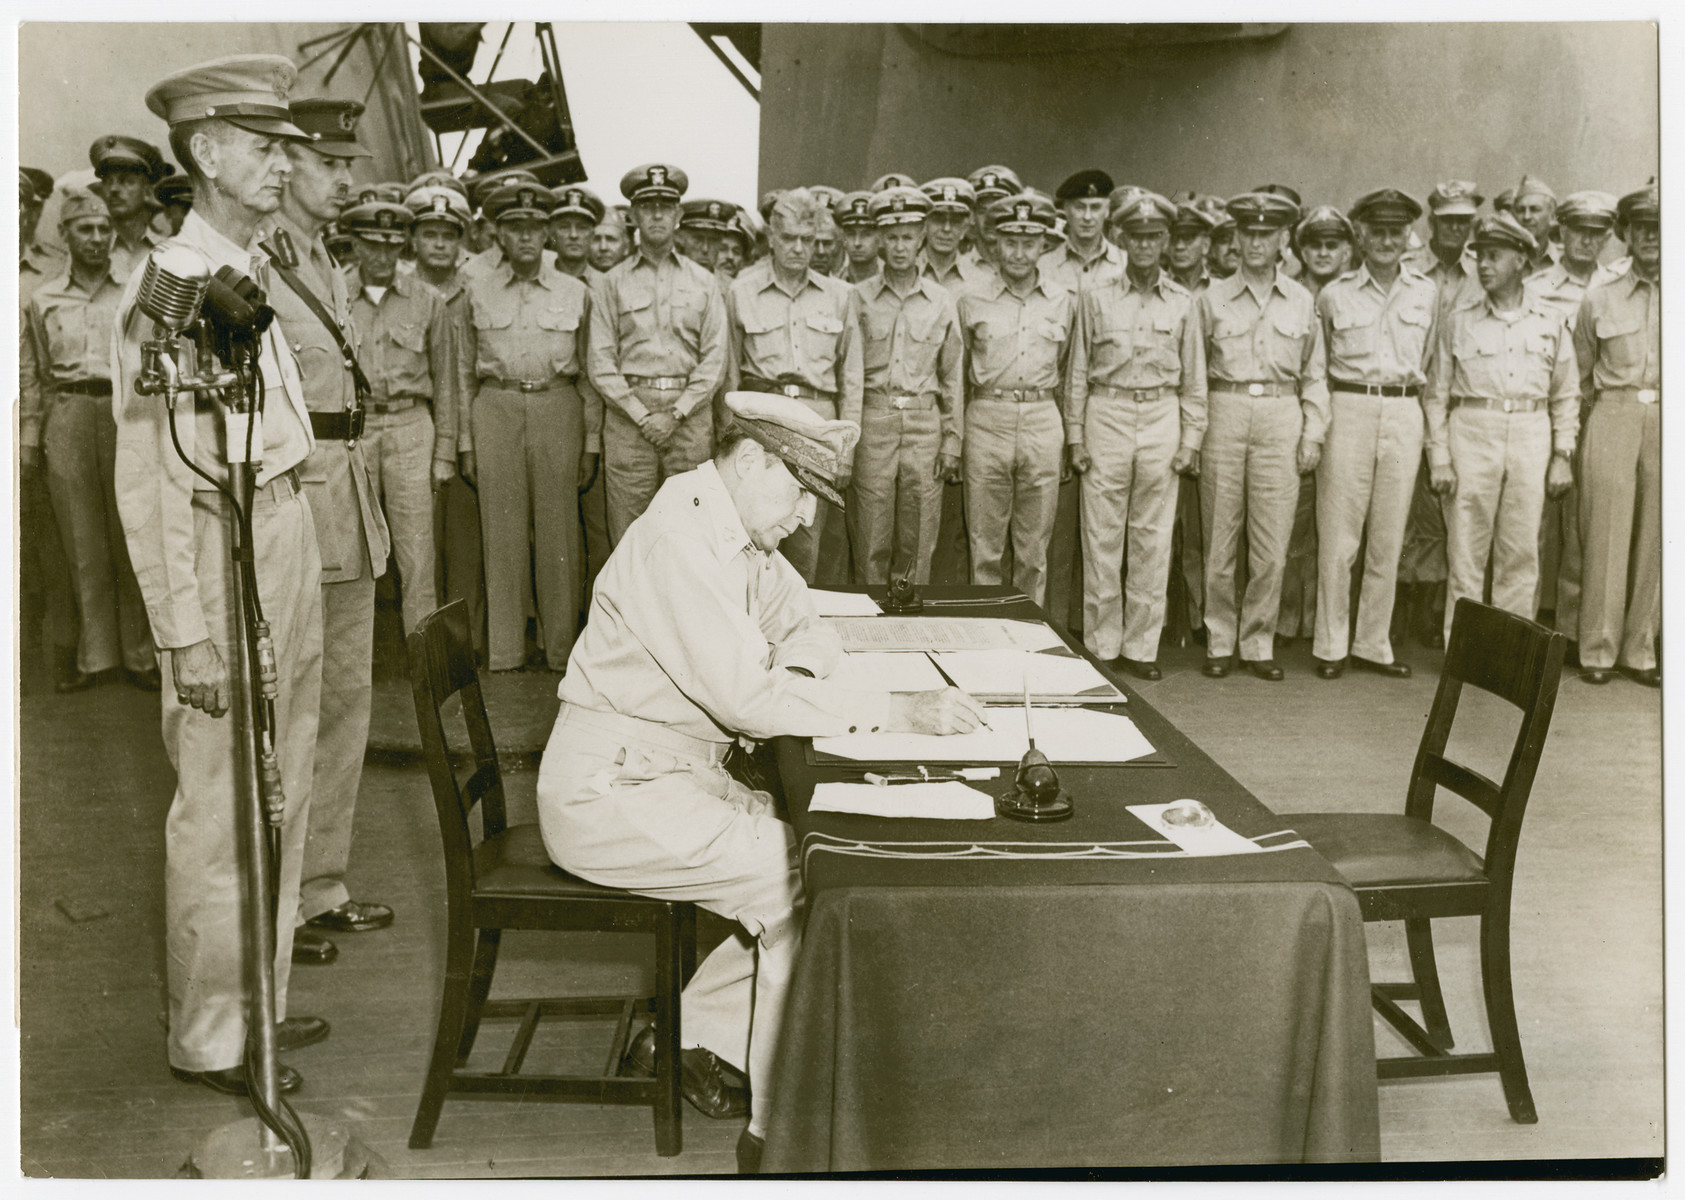 """U.S. General of the Army, Douglas MacArthur, signs the Japanese surrender document aboard the U.S.S. Missouri.   Original caption reads:  """"U.S. General of the Army, Douglas MacArthur, Supreme Allied Commander, signs the Japanese surrender document Sept. 1, 1945 aboard the U.S.S. Missouri.  Behind General MacArthur are U.S. Lieutenant General Jonathan Wainwright, hero of Bataan and Correaidor who was found in a Japanese prisoner of war camp Aug. 20, 1945, and British Lieutenant General Arthur E. Percival, who was forced to surrender Singapore to the Japense.  Both were liberated from the Japanese prison camp at Sian, Manchuria, by U.S. paratroops and Soviet forces.  Both were flown to Tokyo at General MacArthur's invitation to witness the surrender ceremonies""""."""